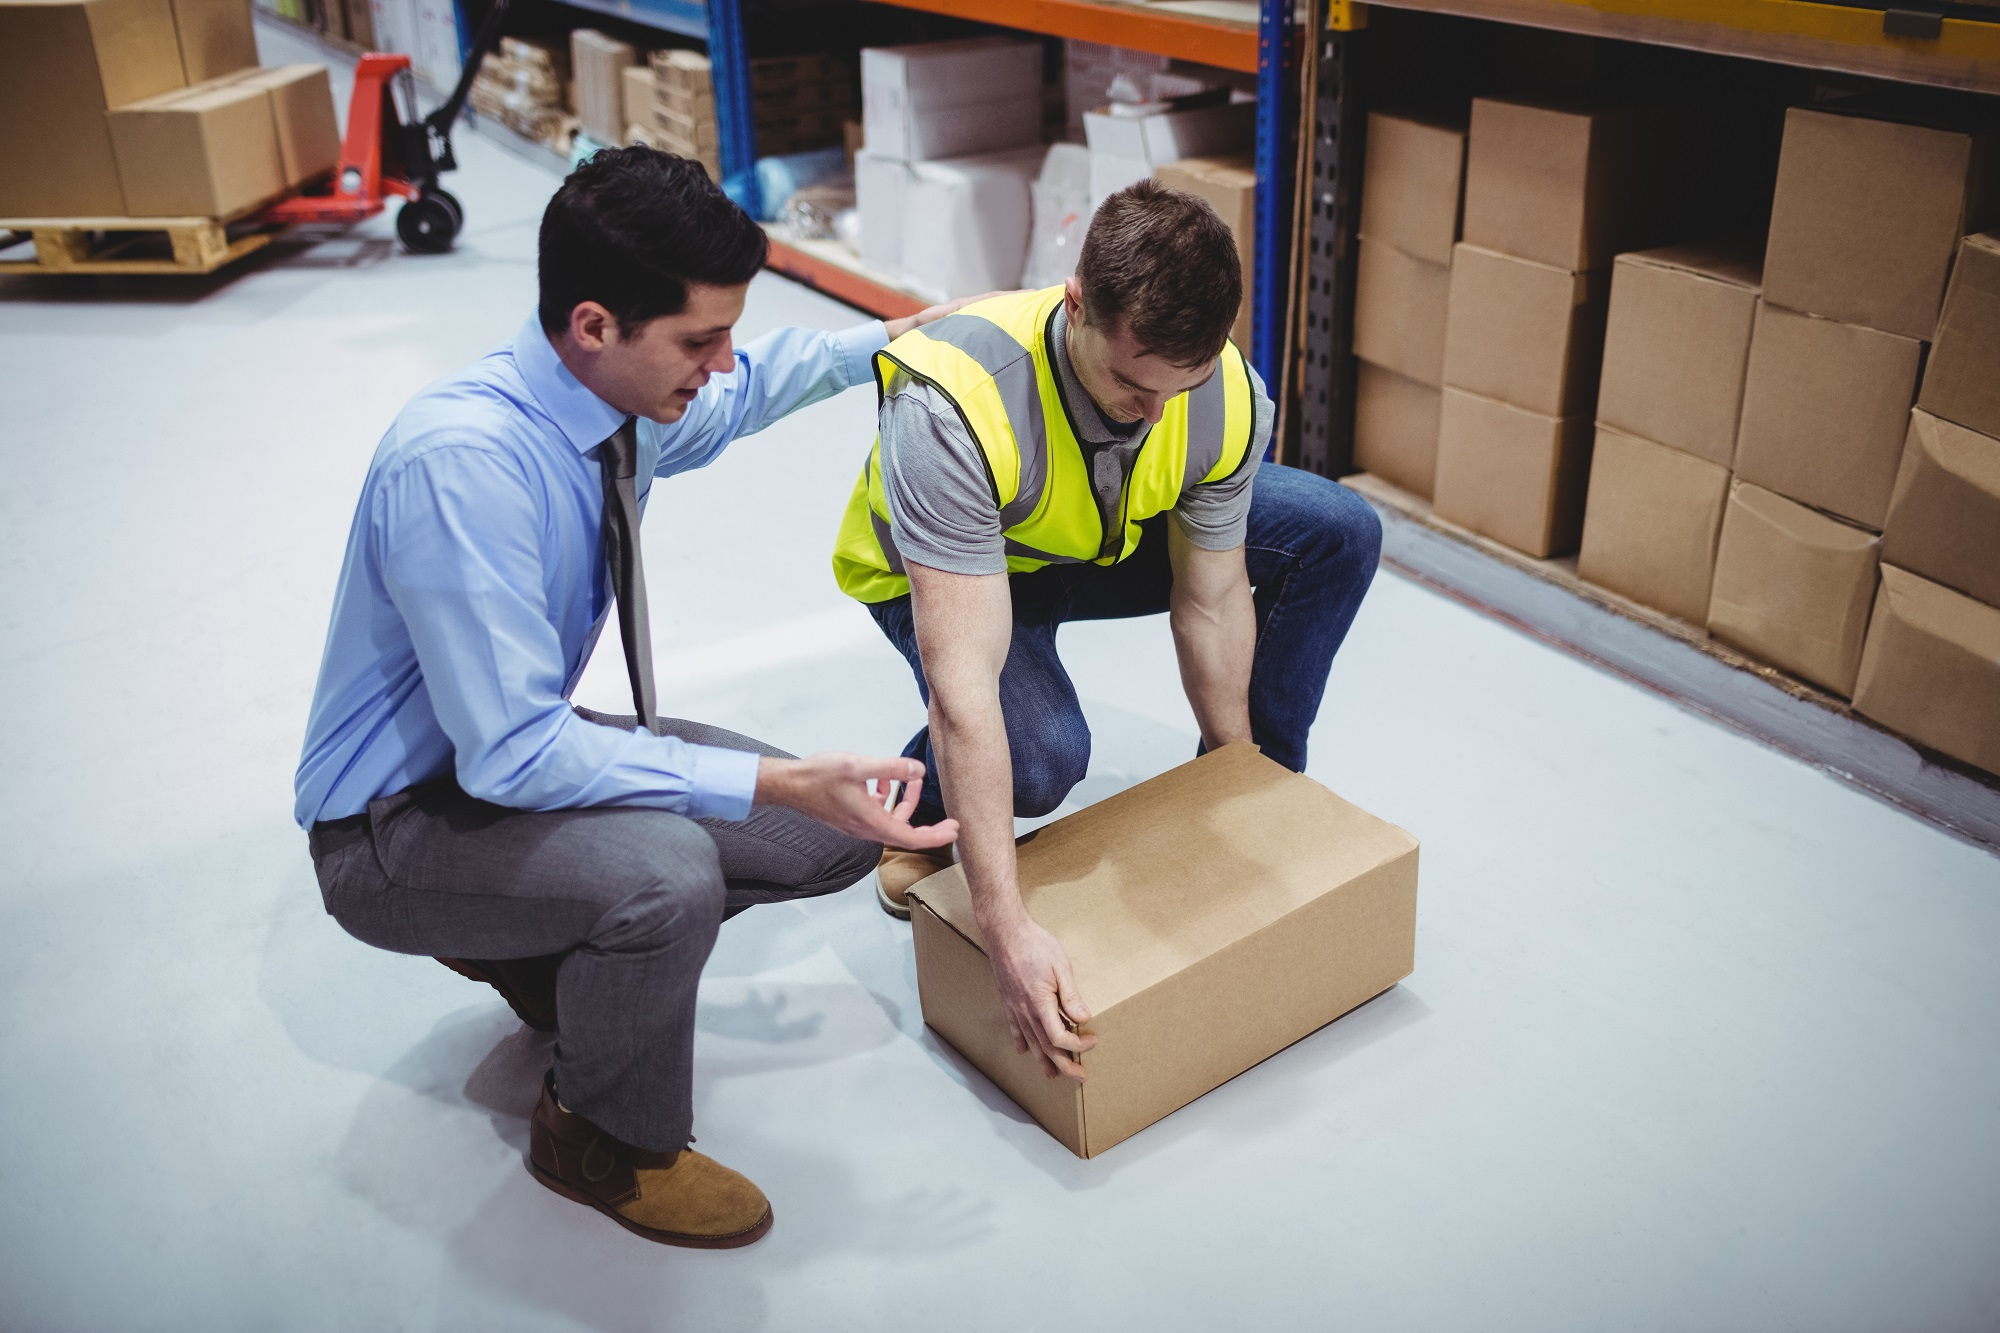 An Introduction to Managing Health and Safety (RoSPA)